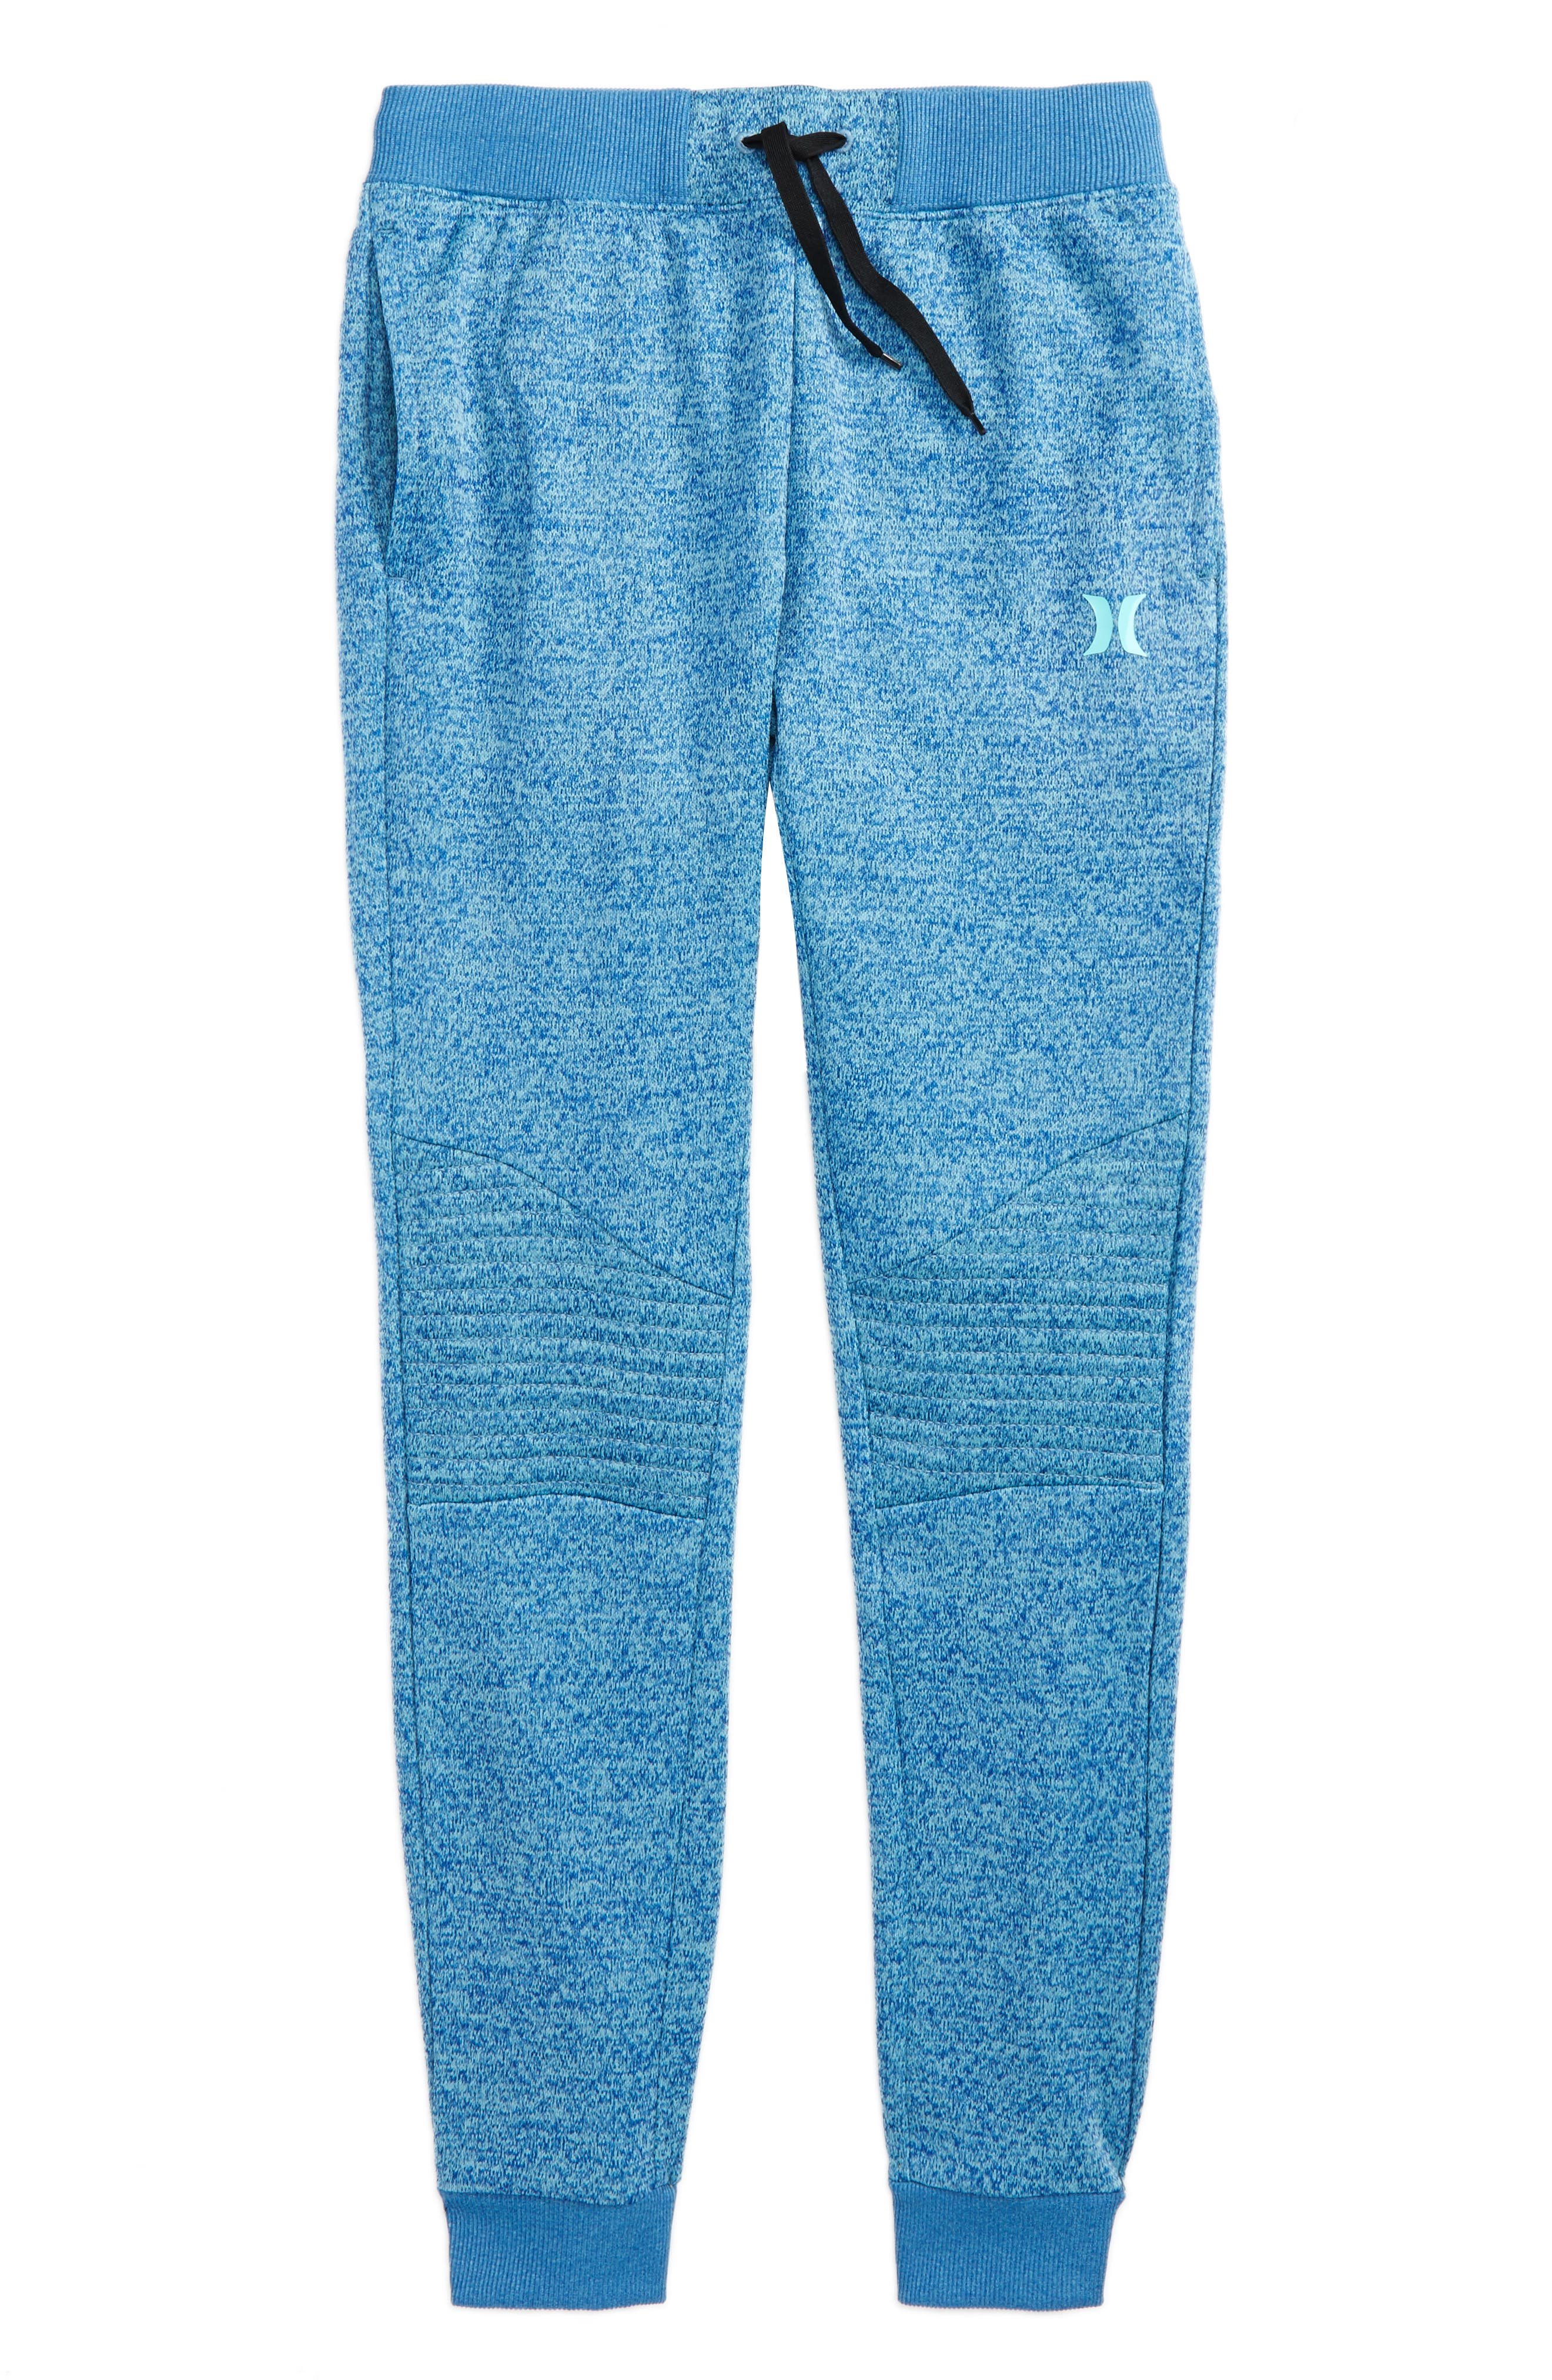 Hurley One and Only Therma-FIT Sweatpants (Big Boys)